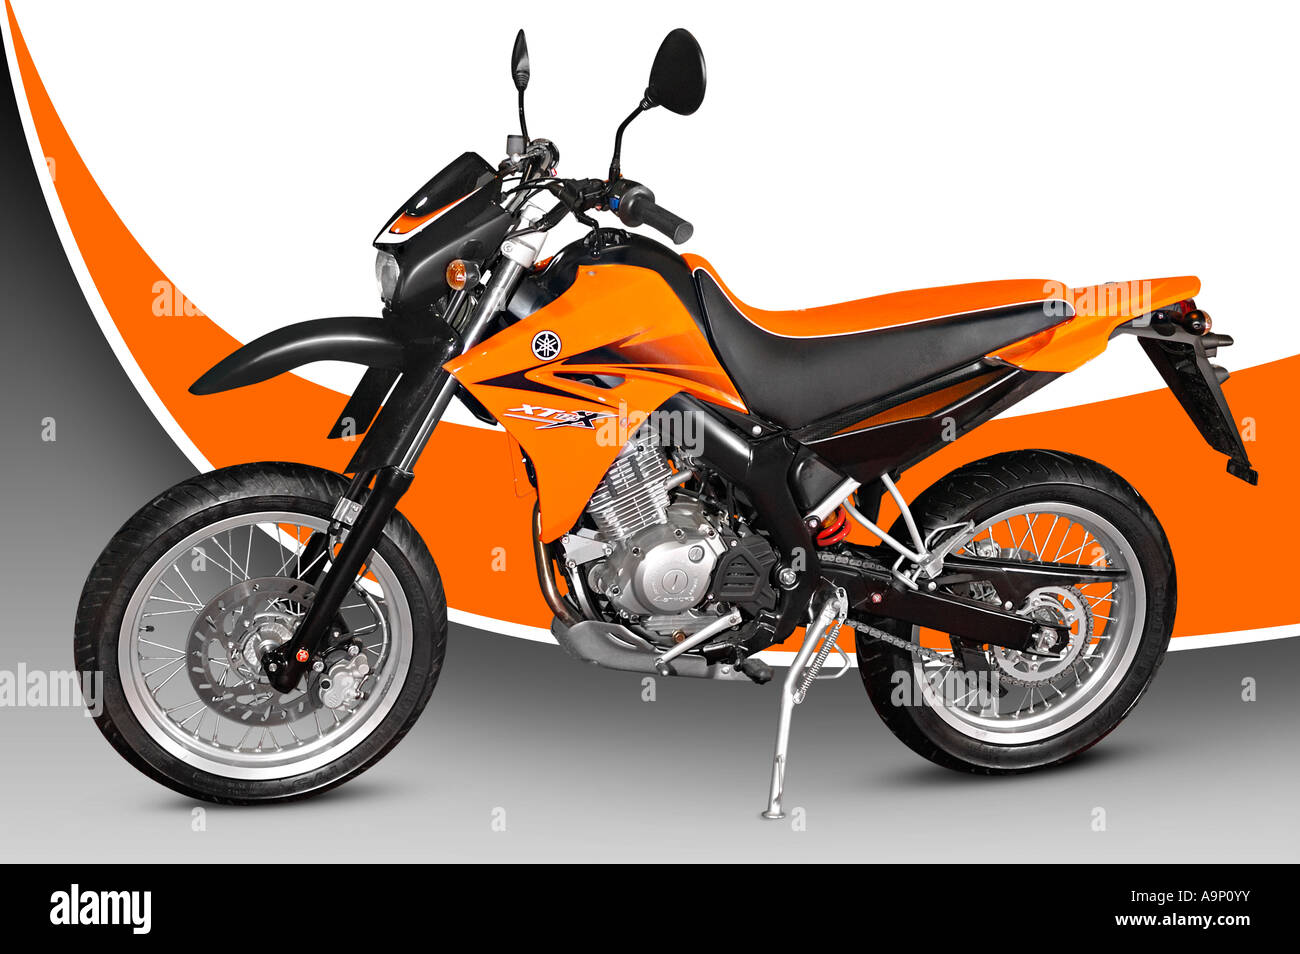 yamaha xt 125 motorcycle motorbike bike stock photo. Black Bedroom Furniture Sets. Home Design Ideas